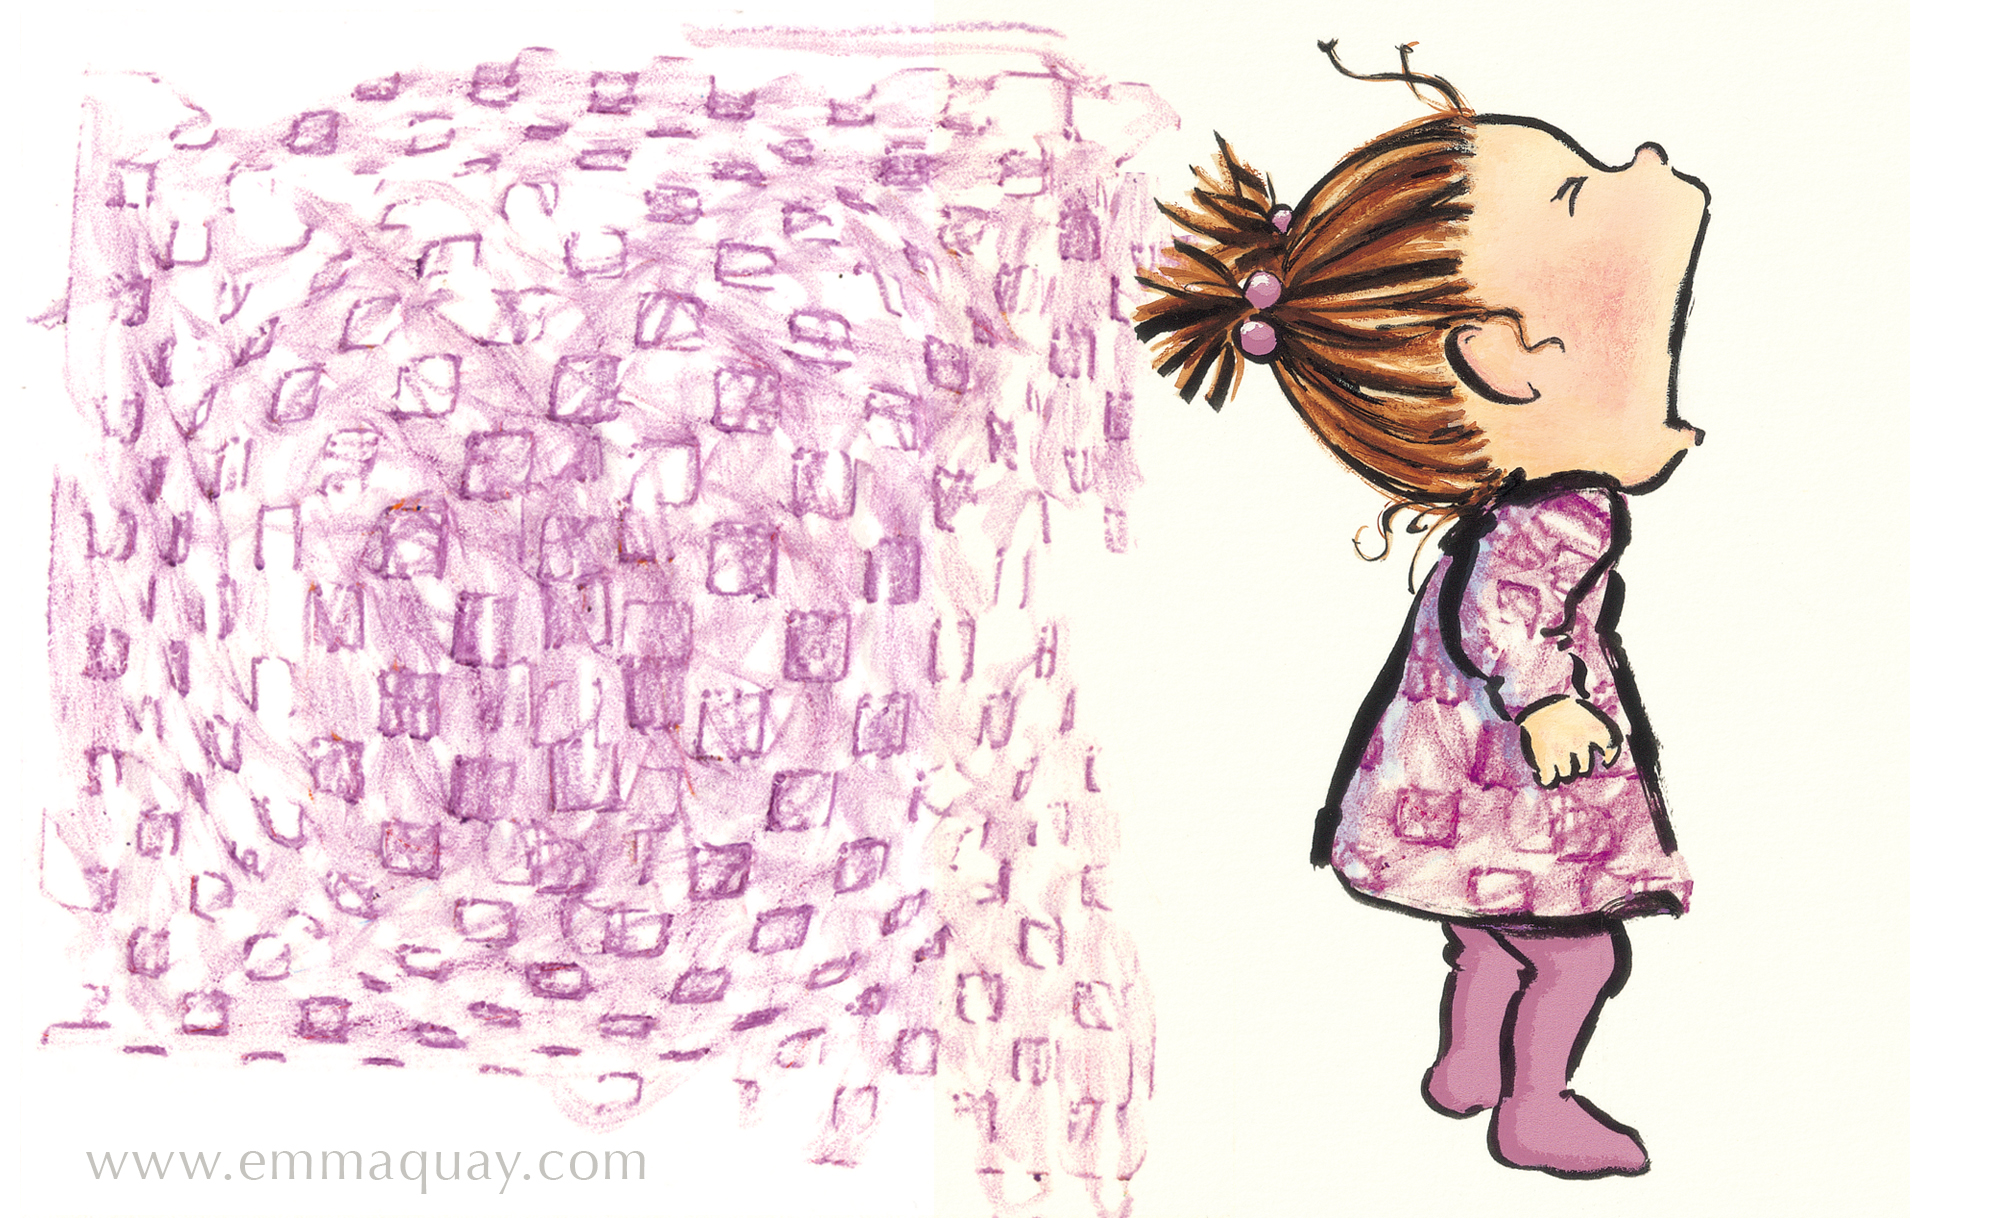 And this wax crayon rubbing was perfect for Violet's other dress.